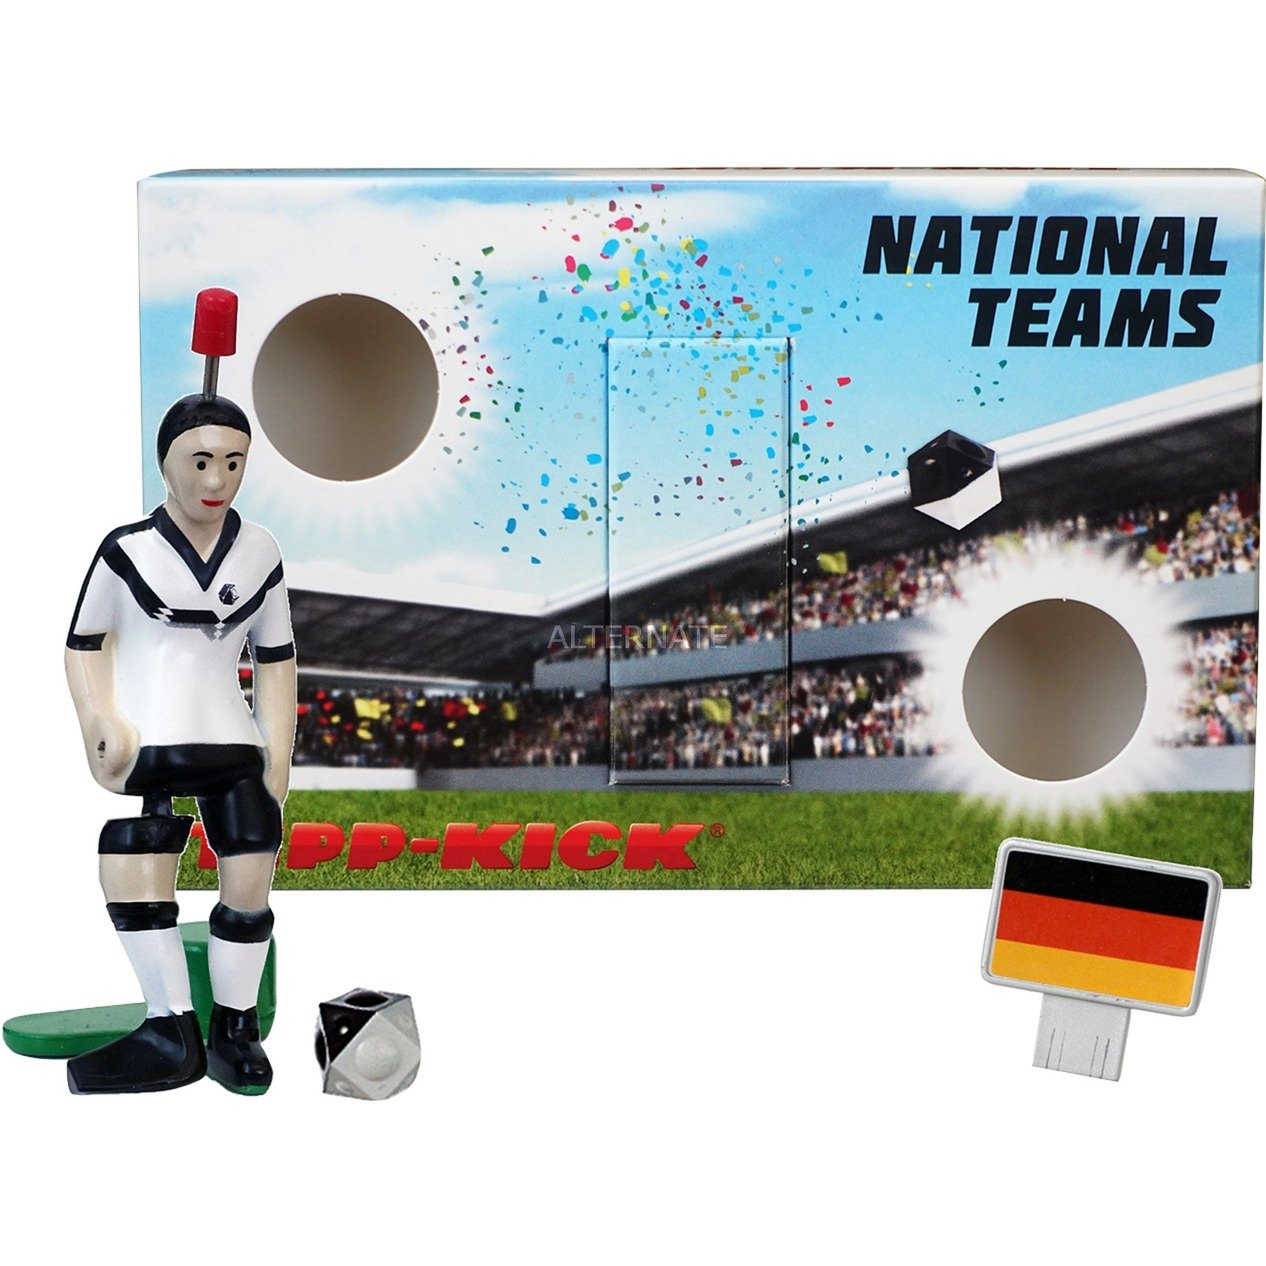 star-kicker-in-torwandbox-spil-figur